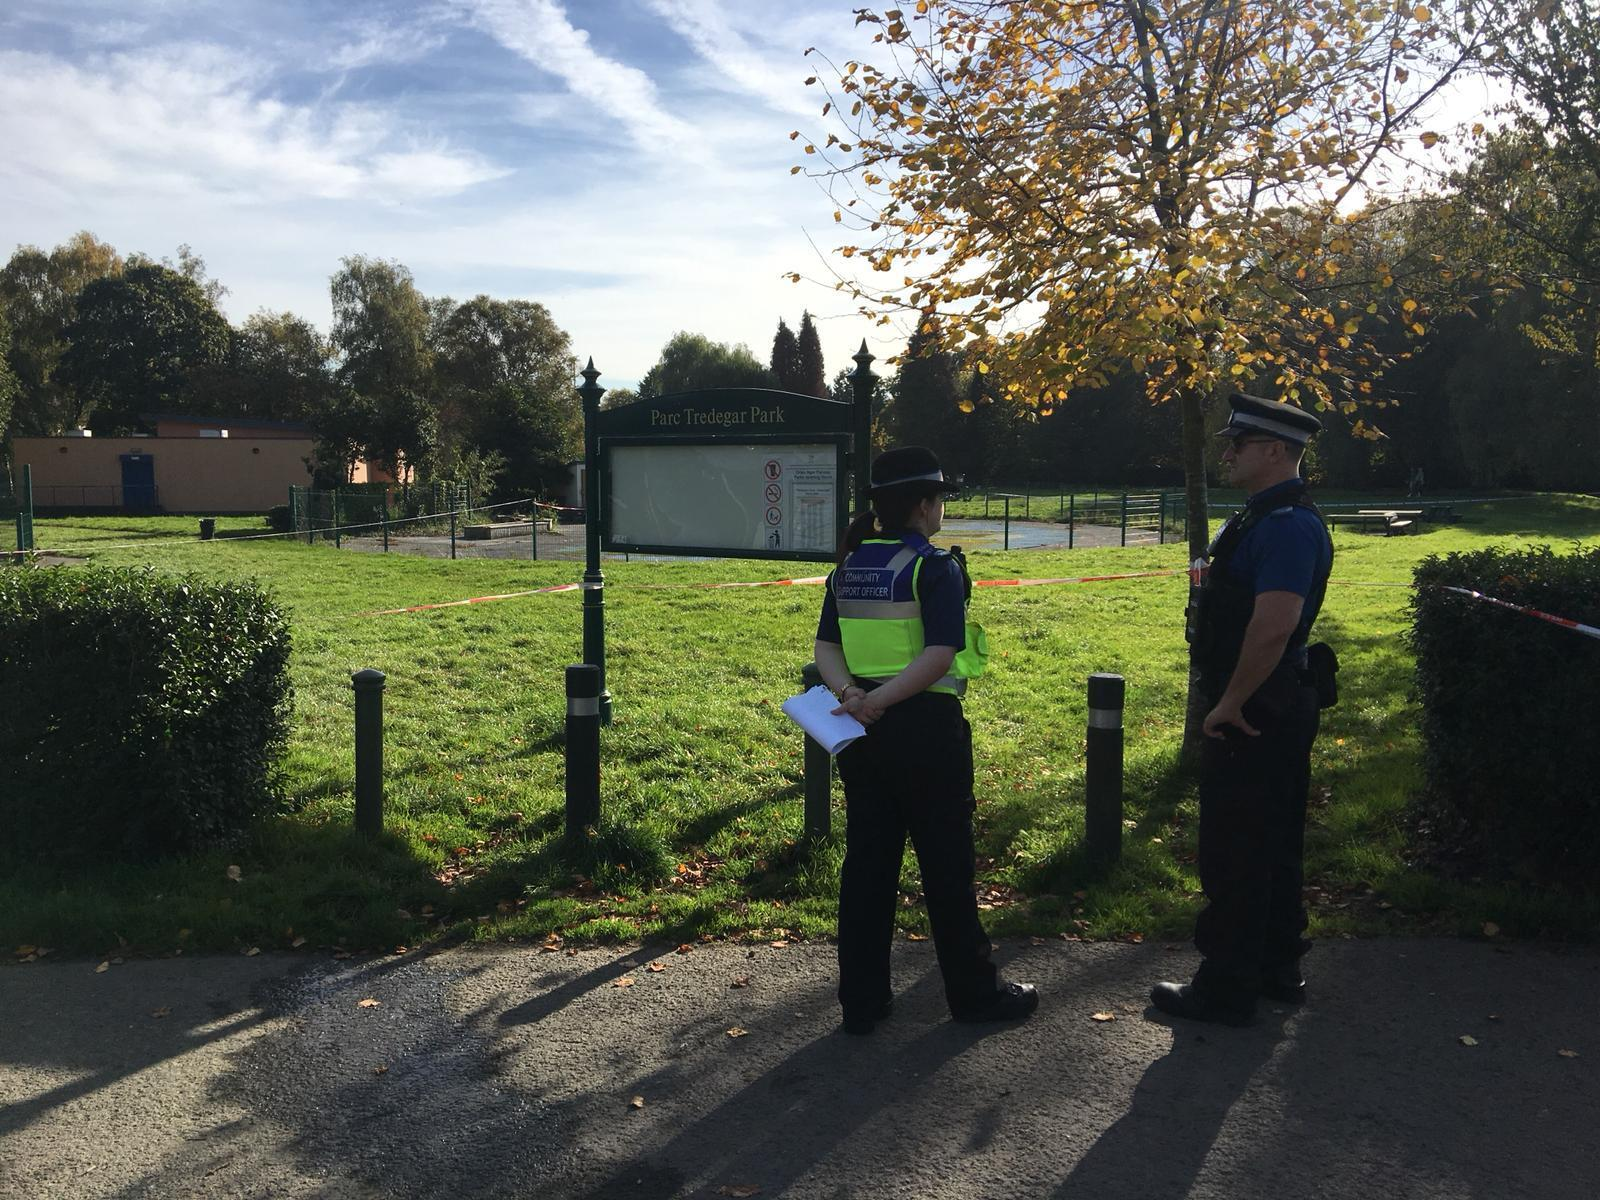 Police officers at the scene in Tredegar Park on October 24